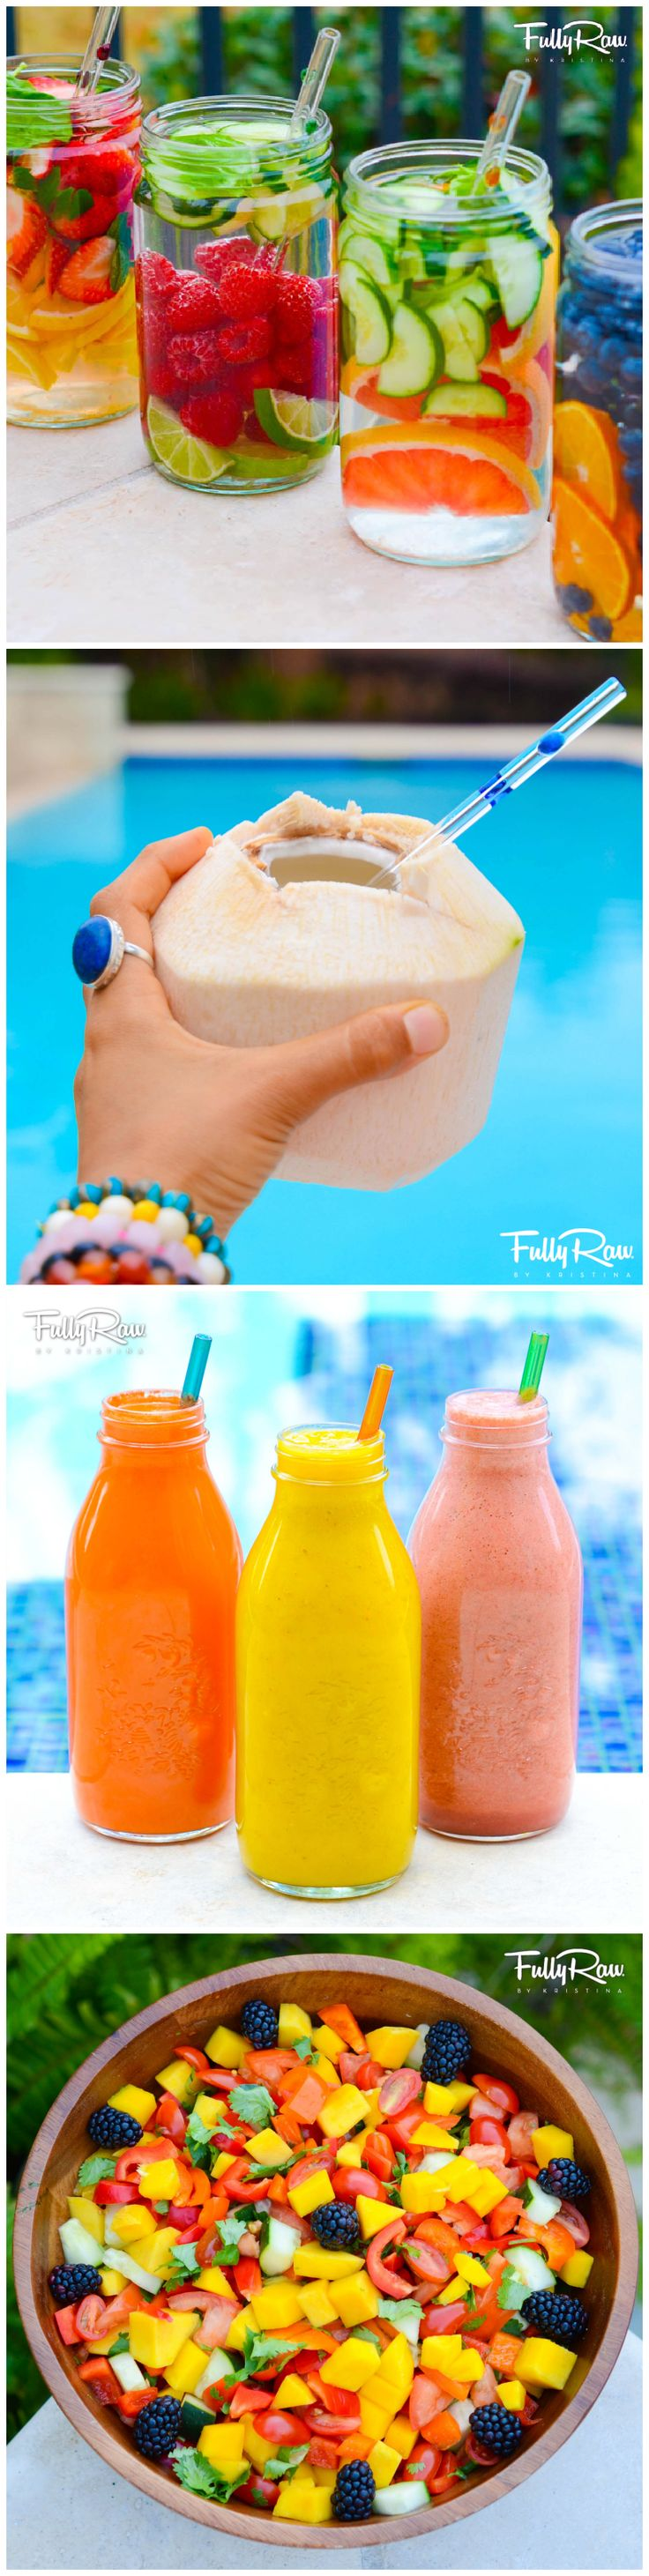 Juice & Smoothie Recipes from Fully Raw